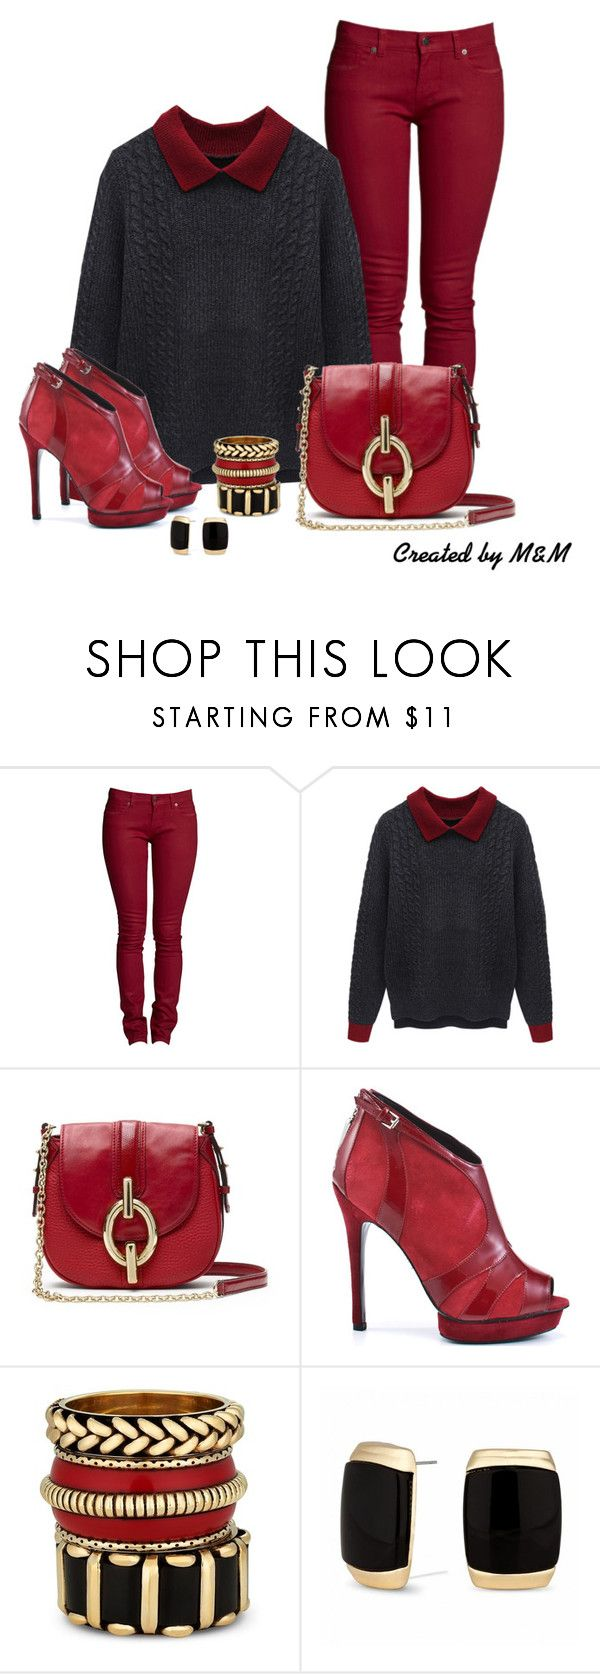 """""""~COOL AUTUMN EVENING~"""" by marion-fashionista-diva-miller ❤ liked on Polyvore featuring Diane Von Furstenberg, Rock & Republic, Red Herring, Jon Richard, autumn, fallfashion and fall2014"""